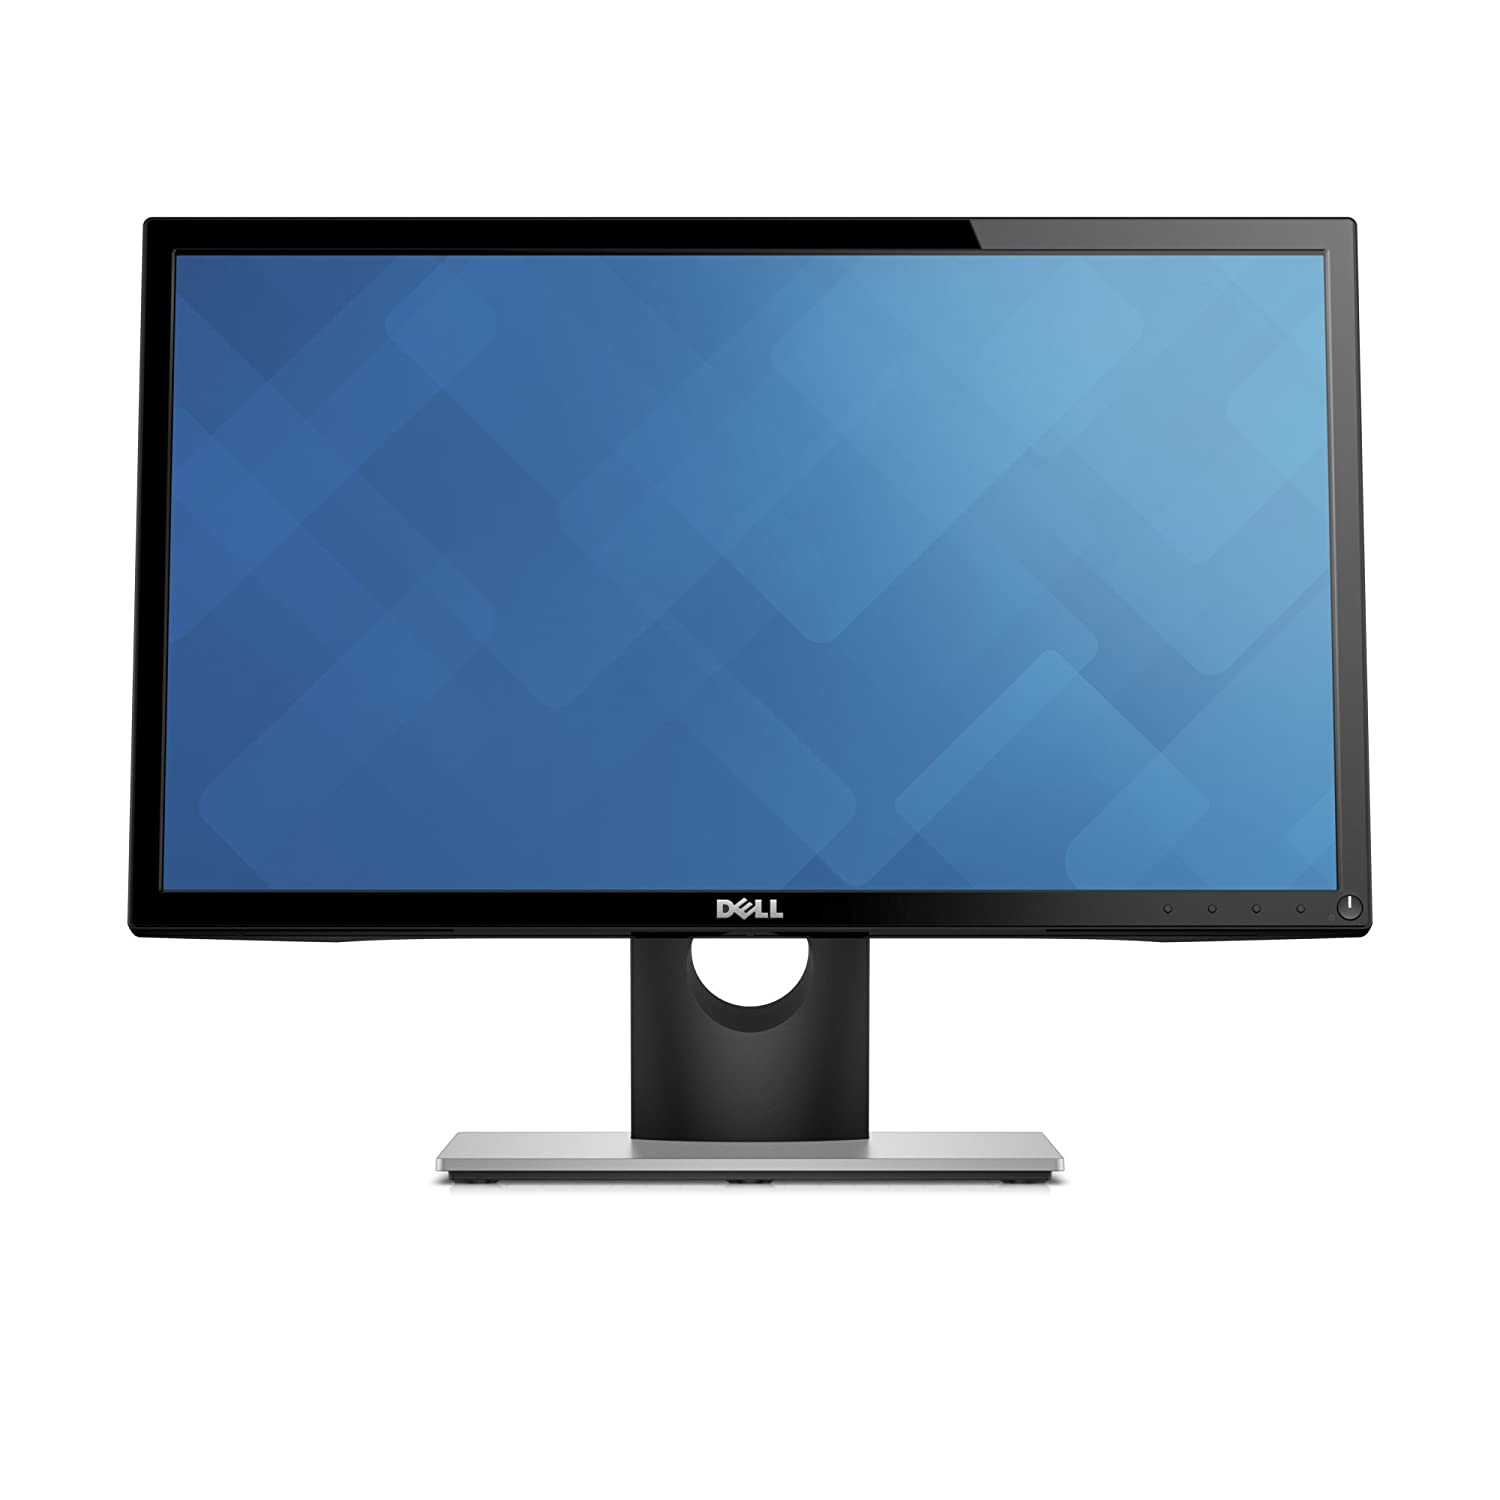 Dell SE2216H - Monitor de 22' Full HD (LED, 250 CD/m² , 3000:1, 12 ms) Color Negro Dell SE2216H - Monitor de 22 Full HD (LED 250 CD/m² Dell Computers 091B848